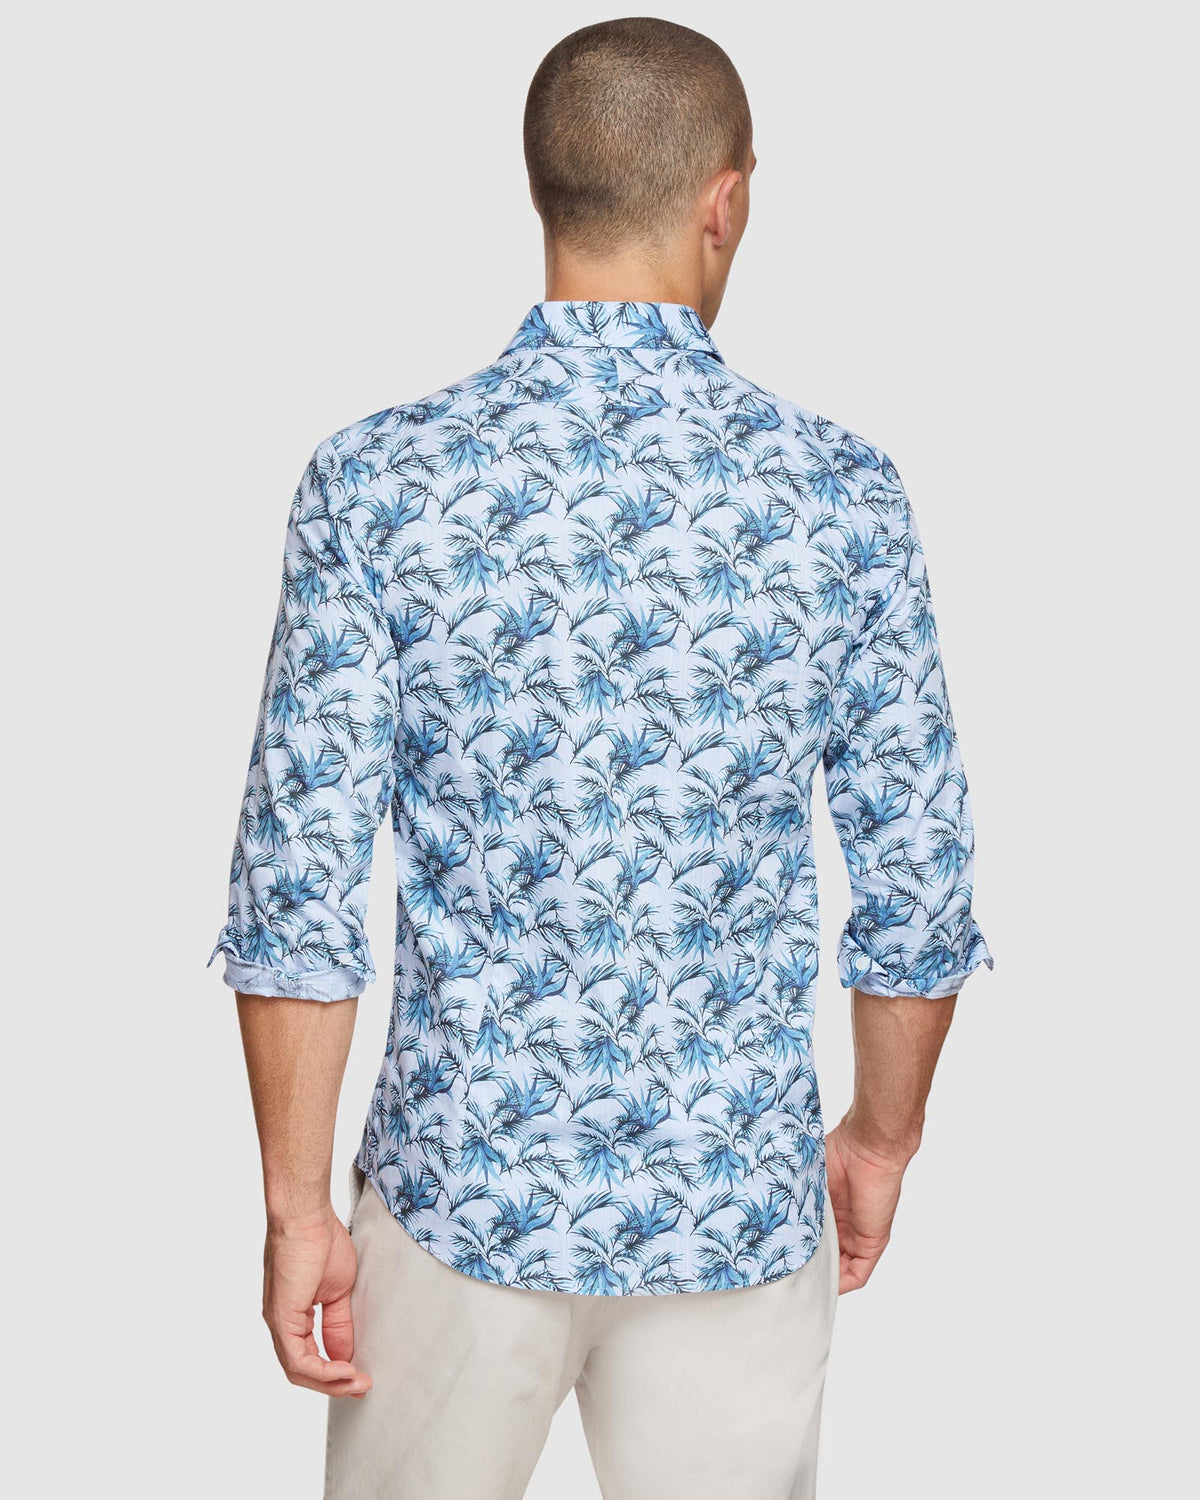 KENTON PRINTED LUXURY SHIRT